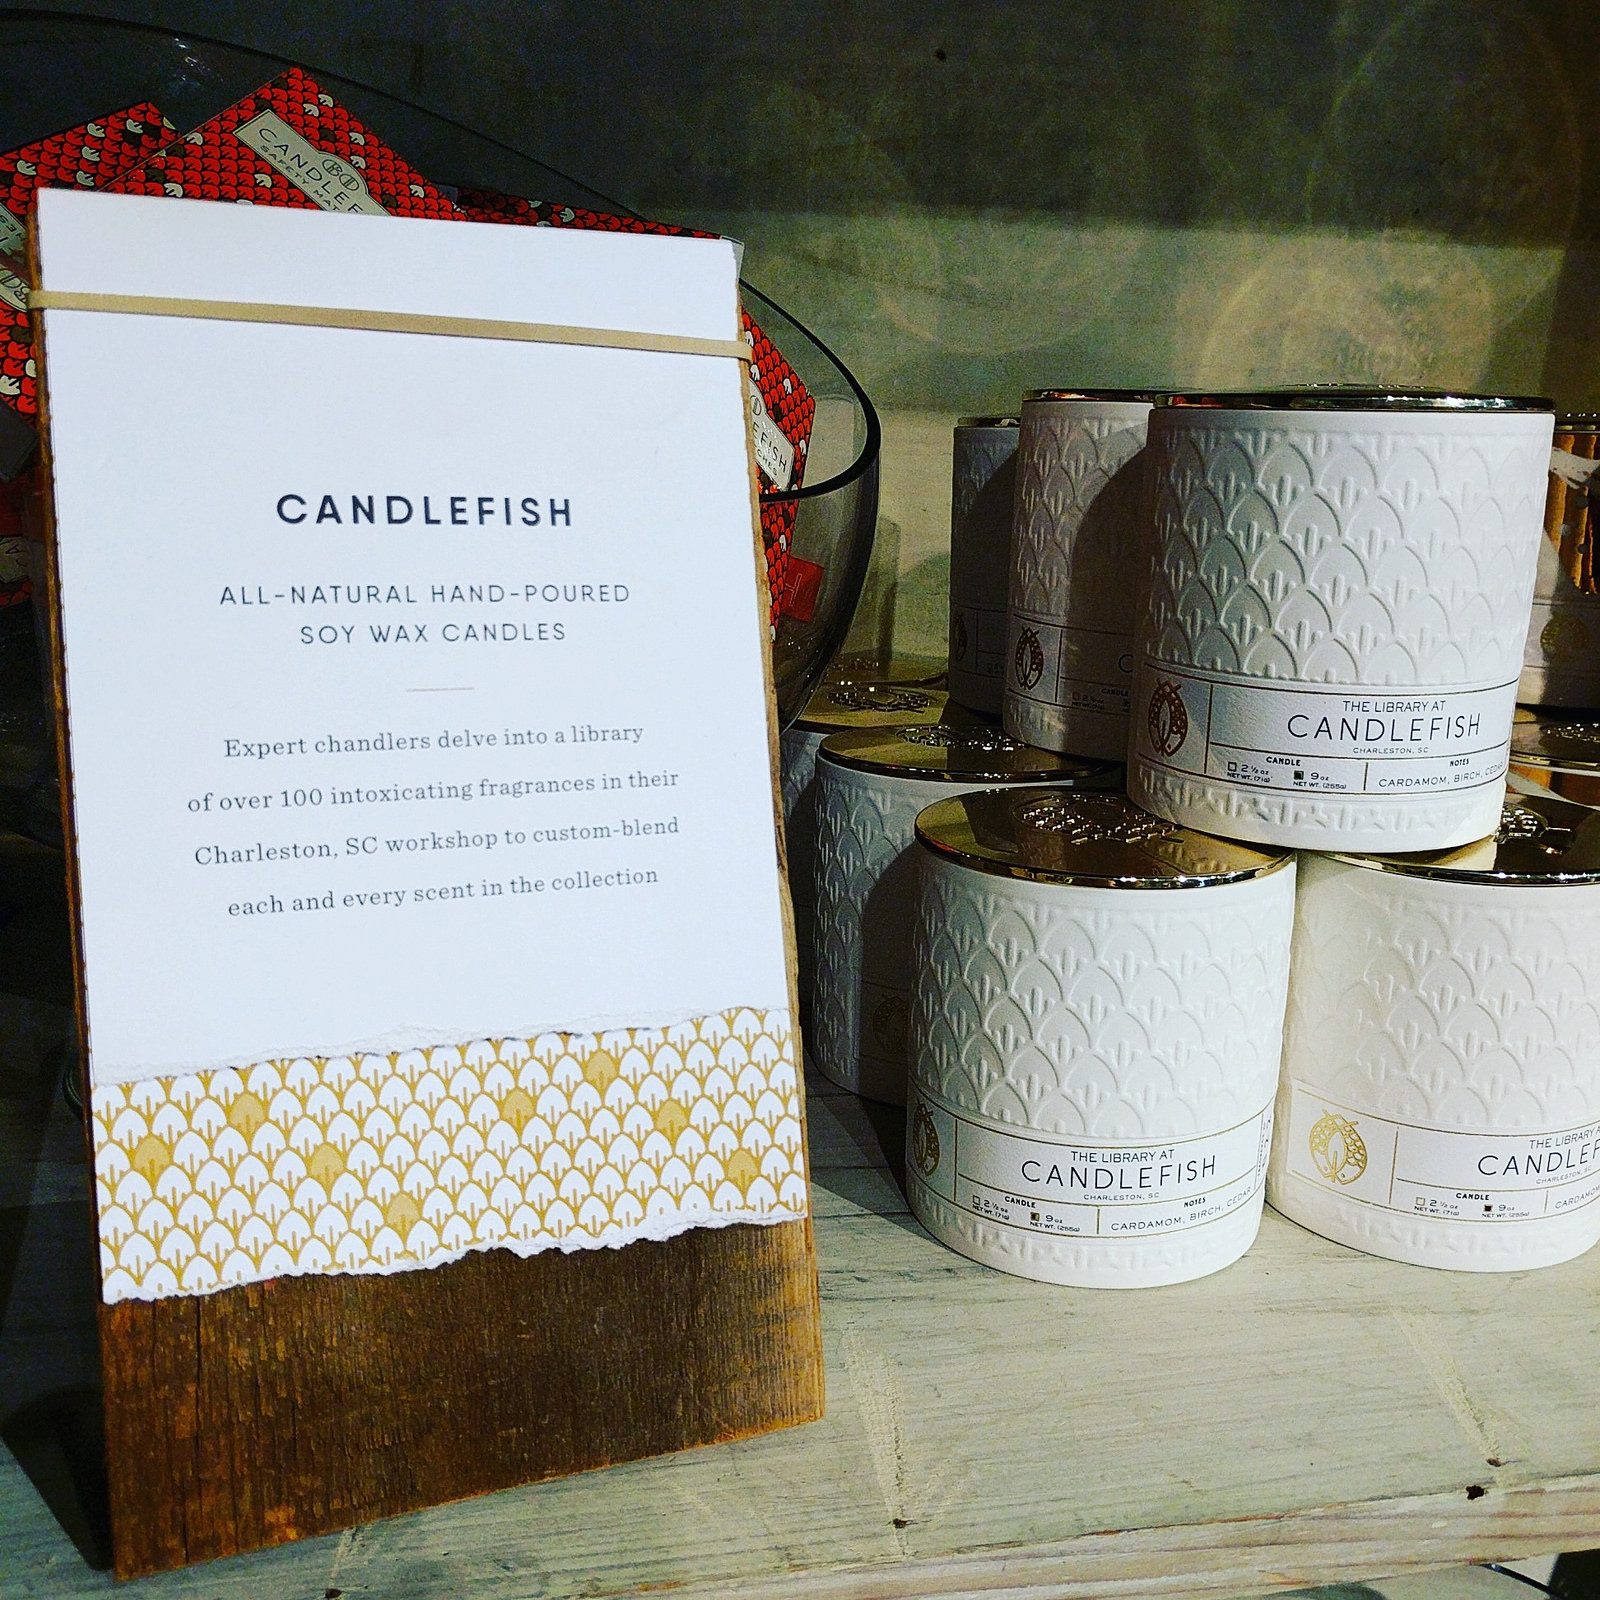 Handpoured soy candles from Candlefish at Anthropologie